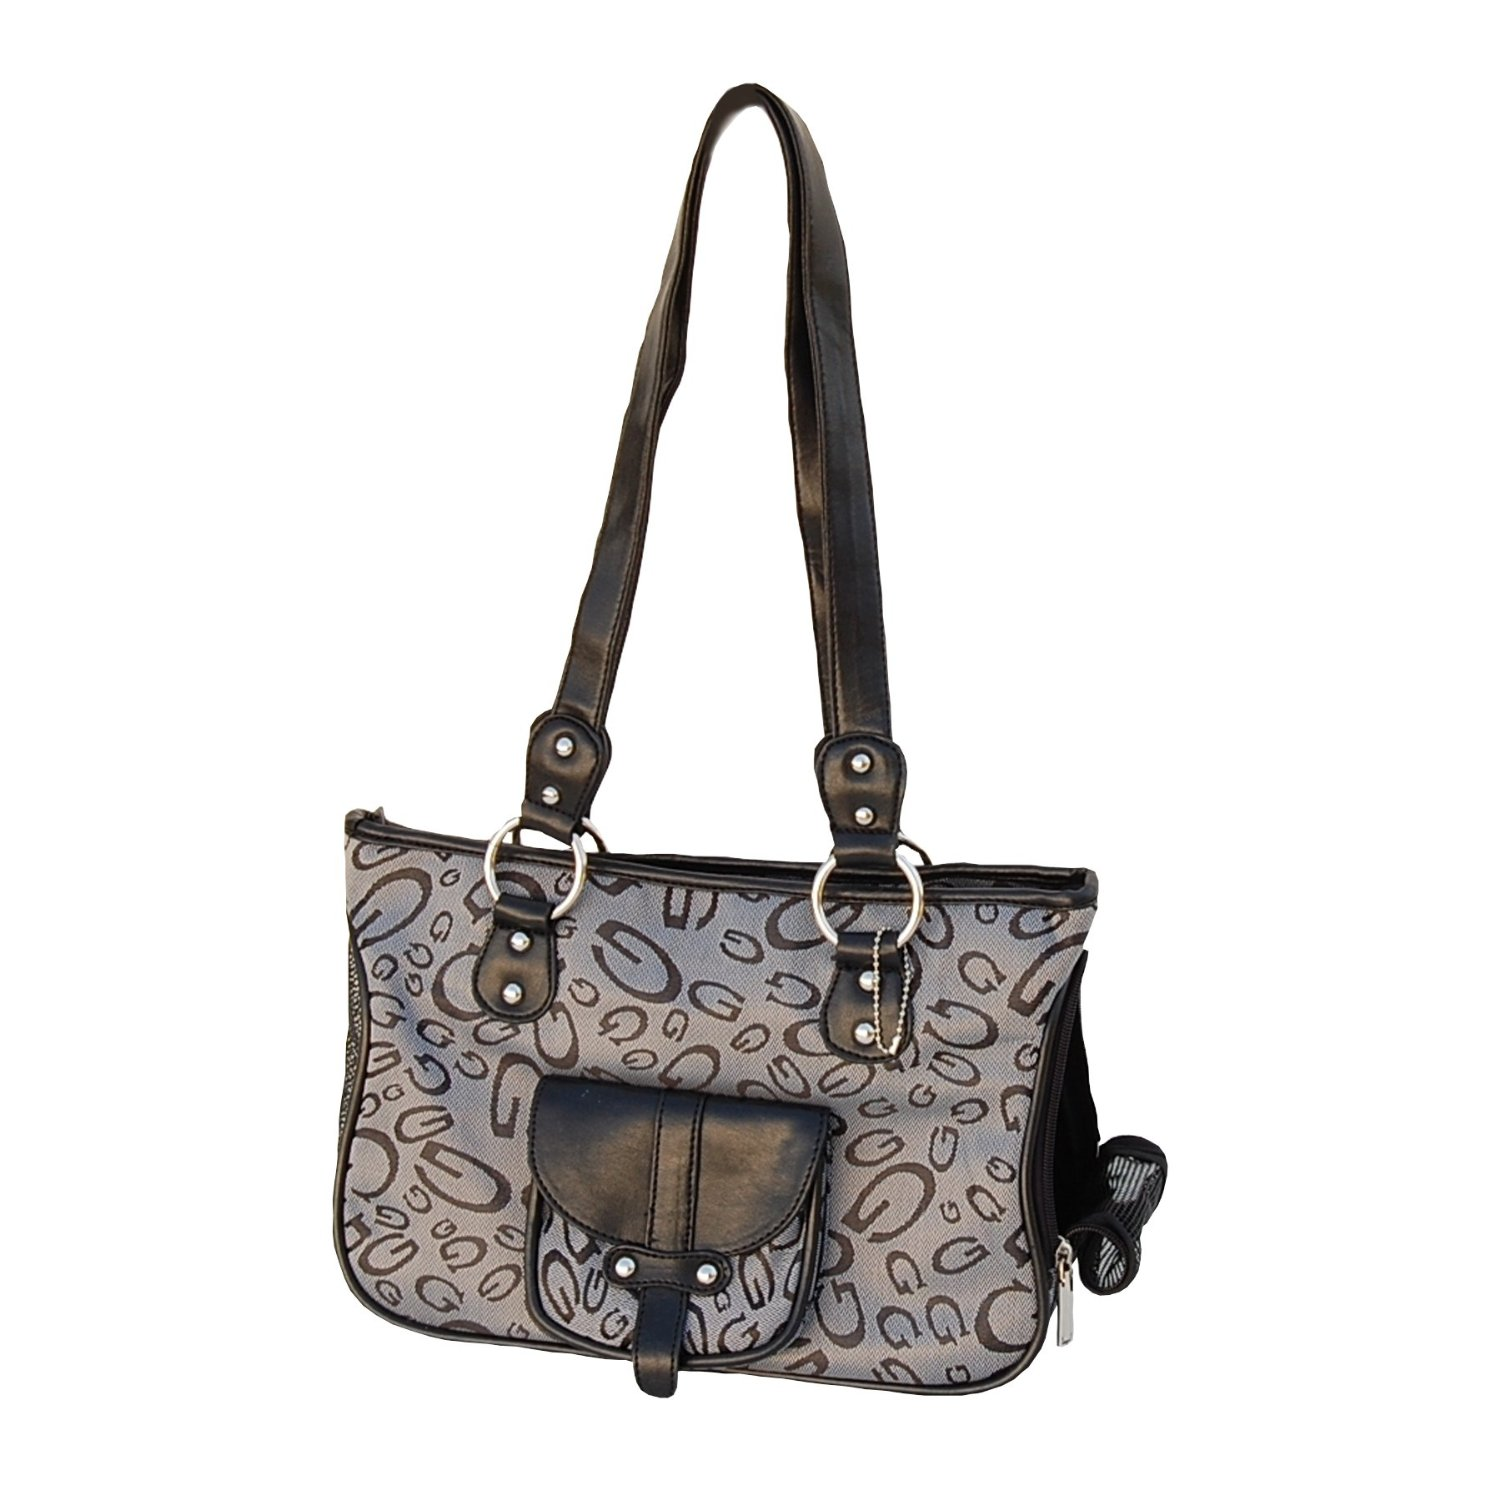 Questions and answers about this item - Dog purse carriers designer ...